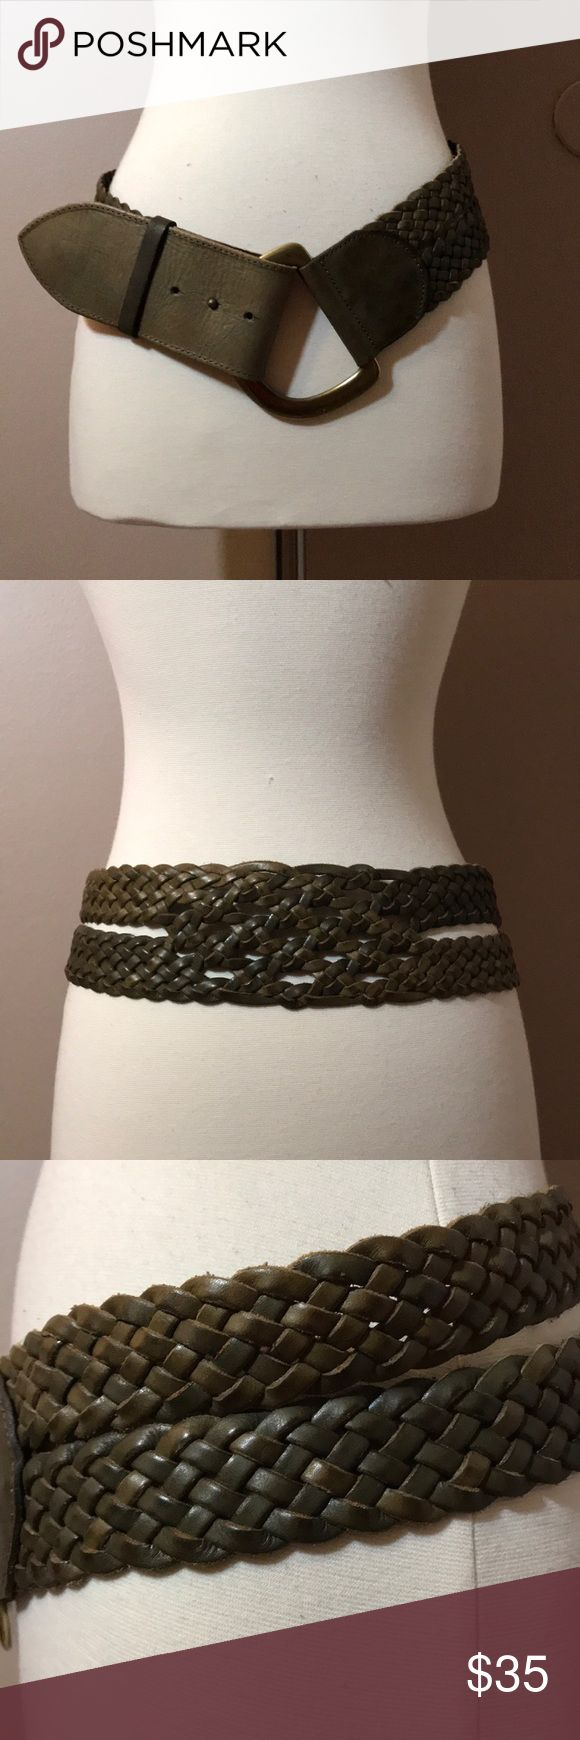 "linea Pelle Wide Braided Belt Genuine leather braided belt is 3"" wide and has a large antique brass tone buckle . Three holes for size adjustment. The belt is about 41"" end to end in entirety . The color is sort of a deep olive/taupe . Linea Pelle Accessories Belts"